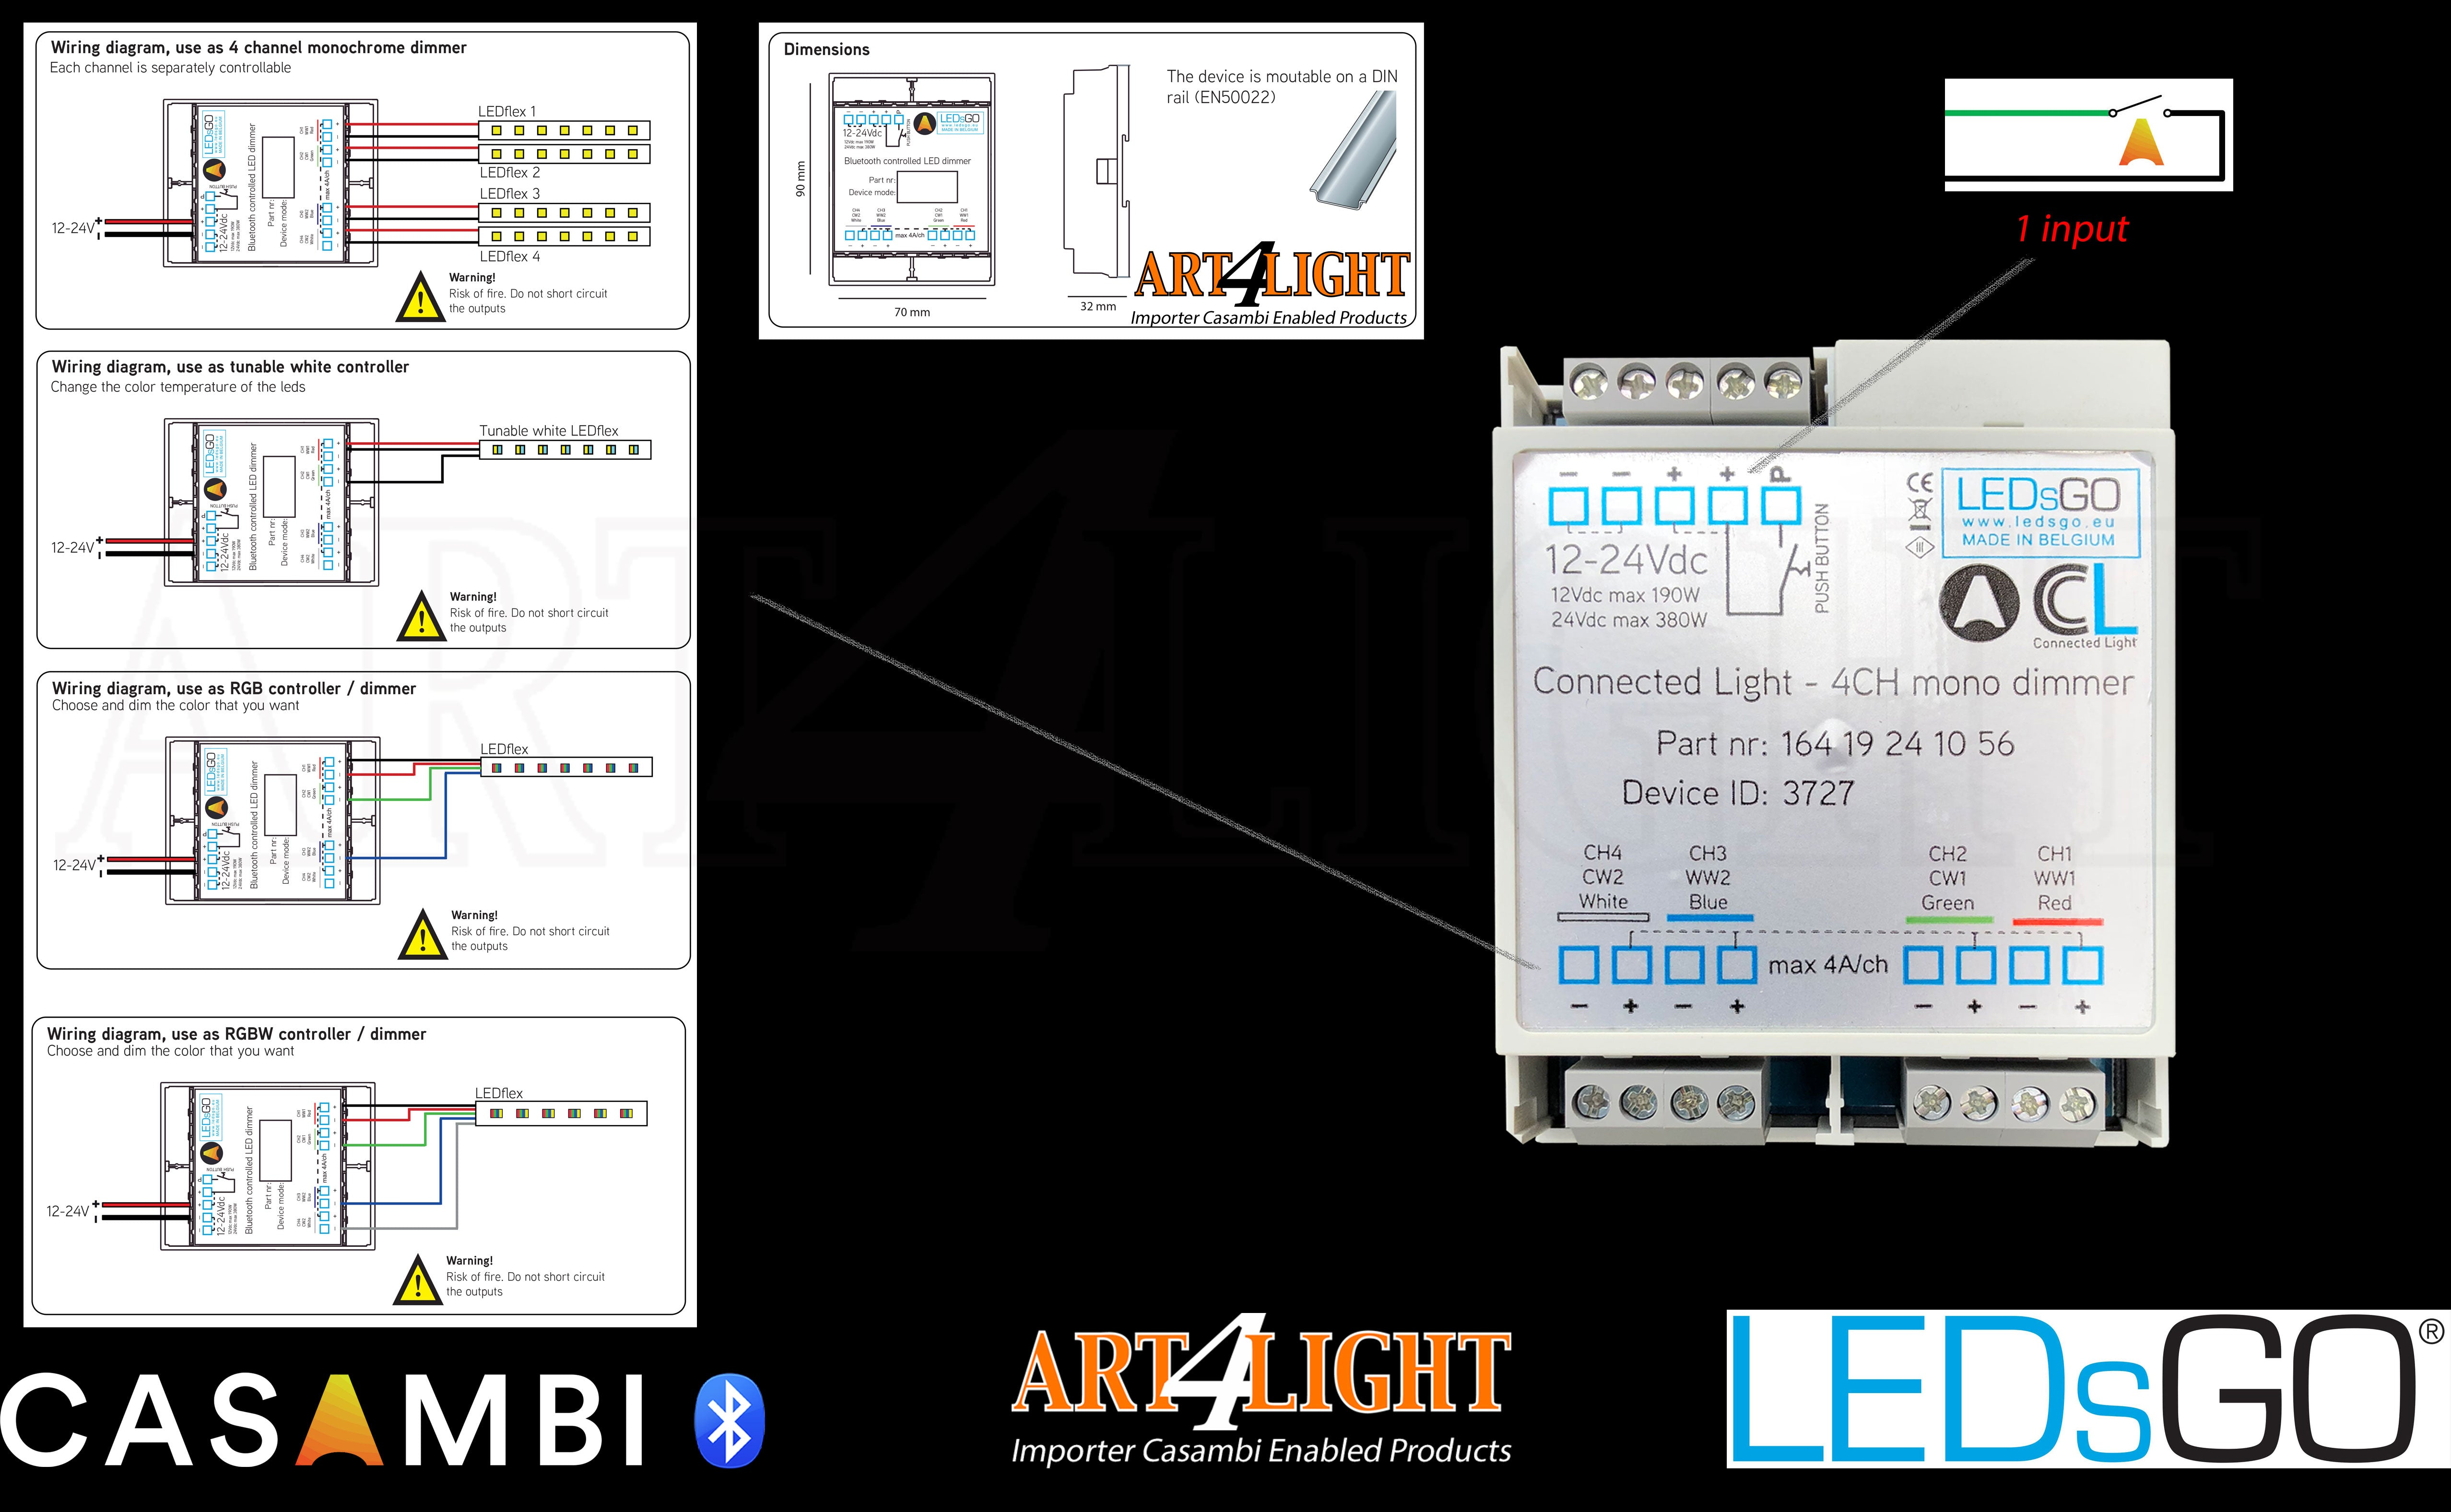 OVERVIEW OF CONFIGURATION  LEDSGO 4CH DIMMER CONNECTED LIGHT CASAMBI